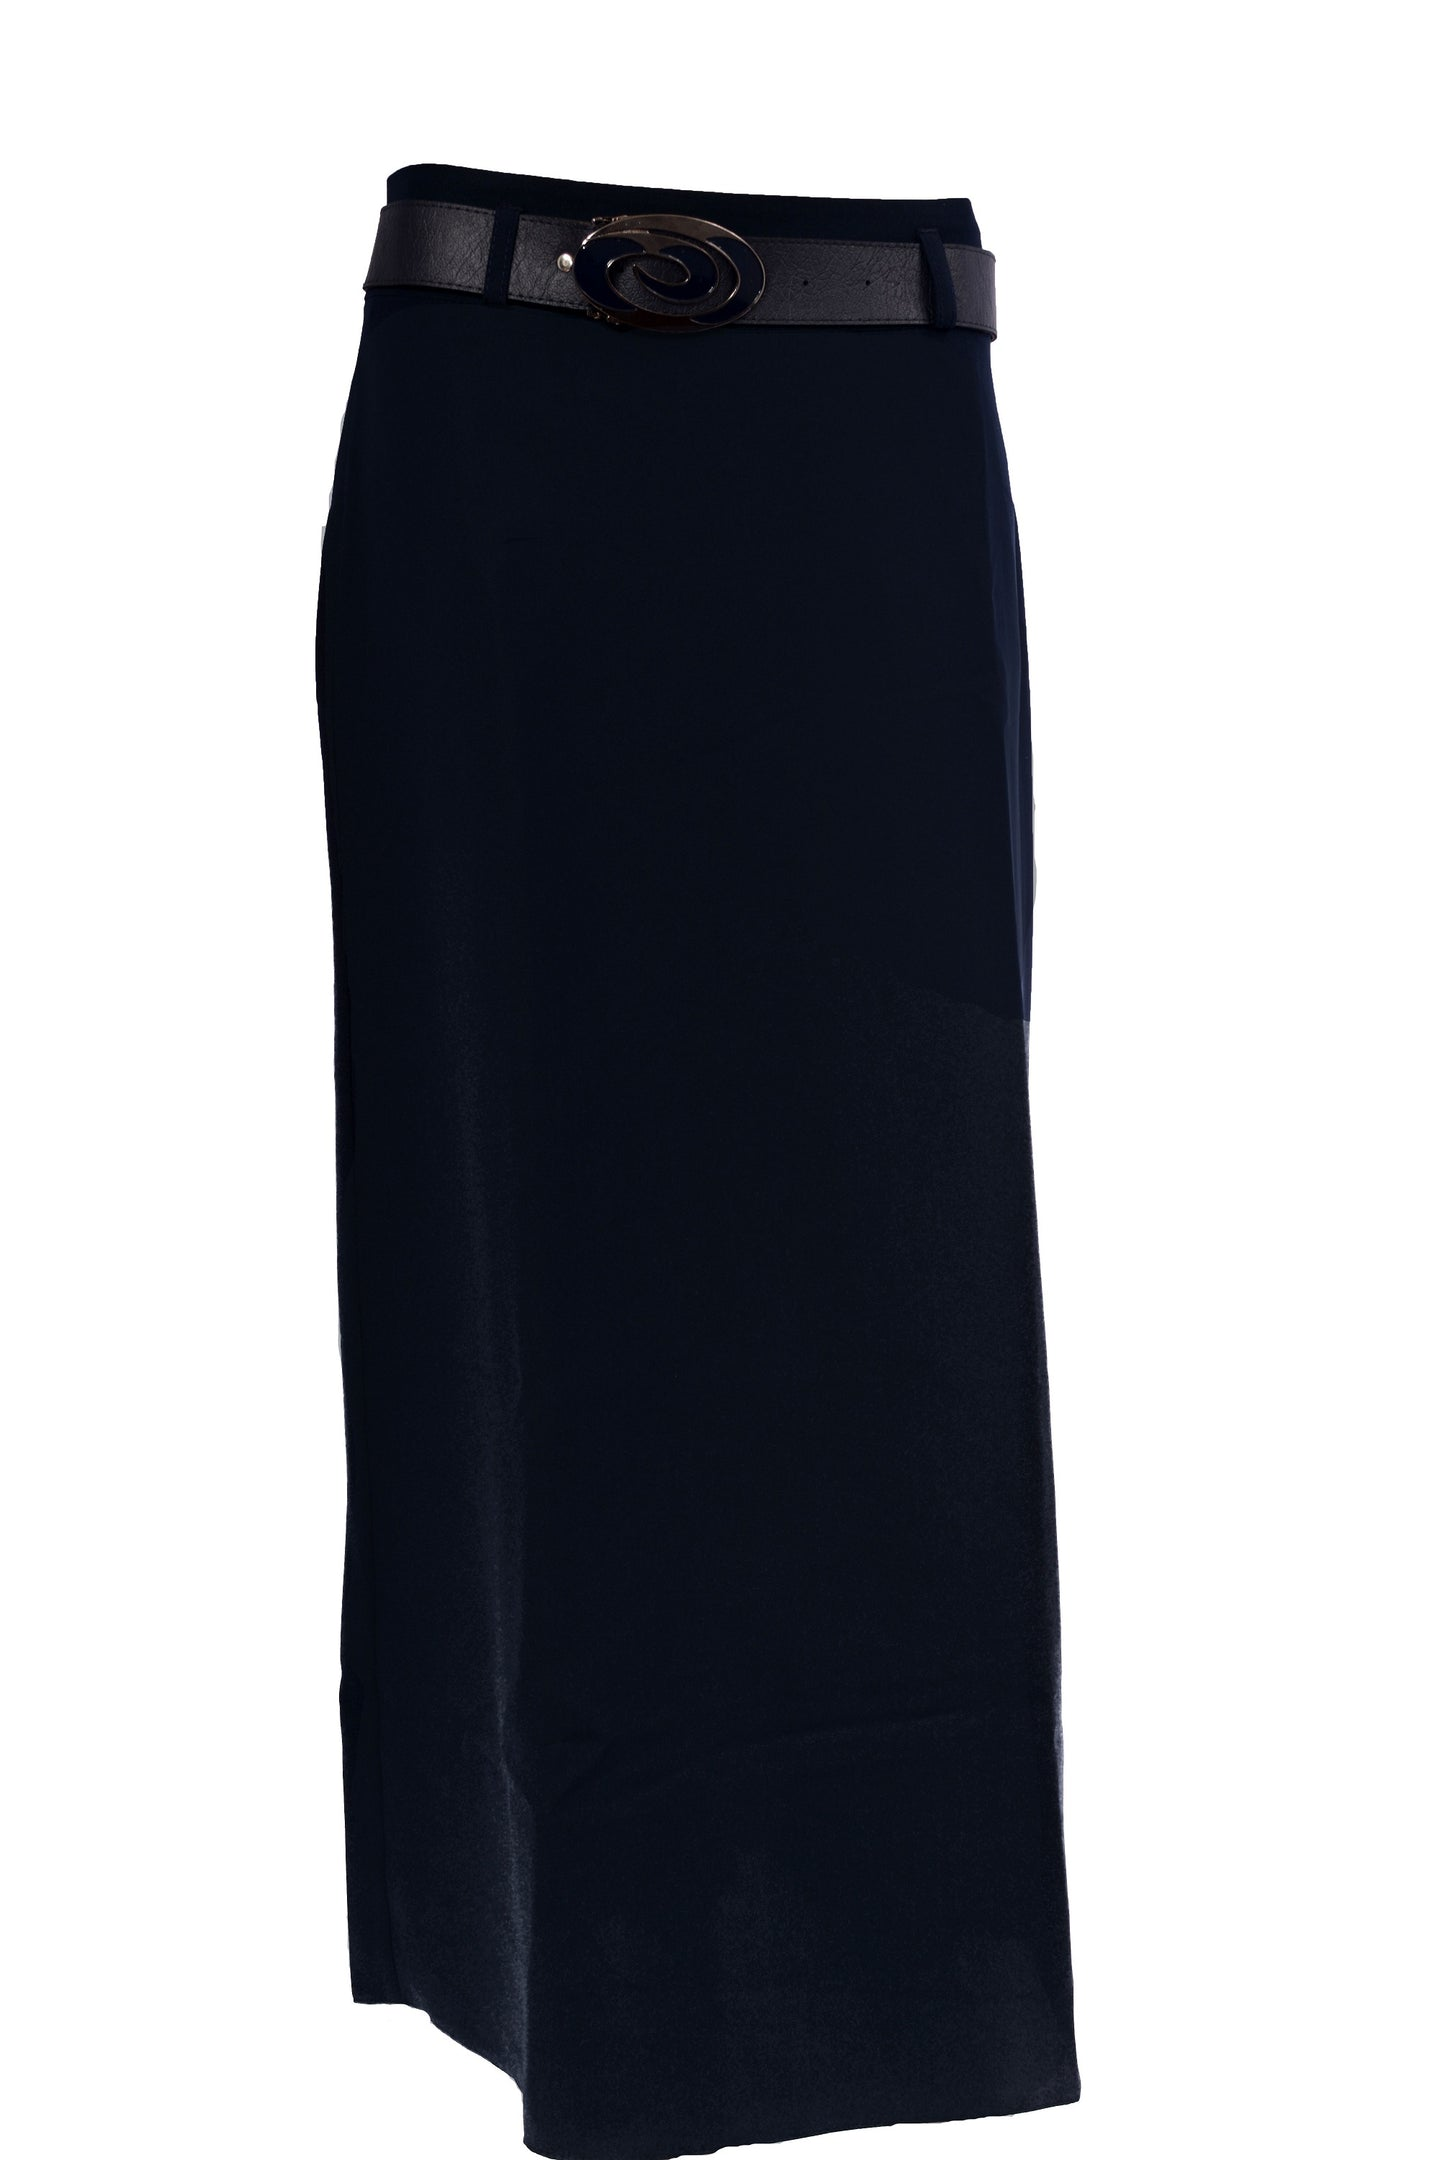 Navy Blue Work skirt